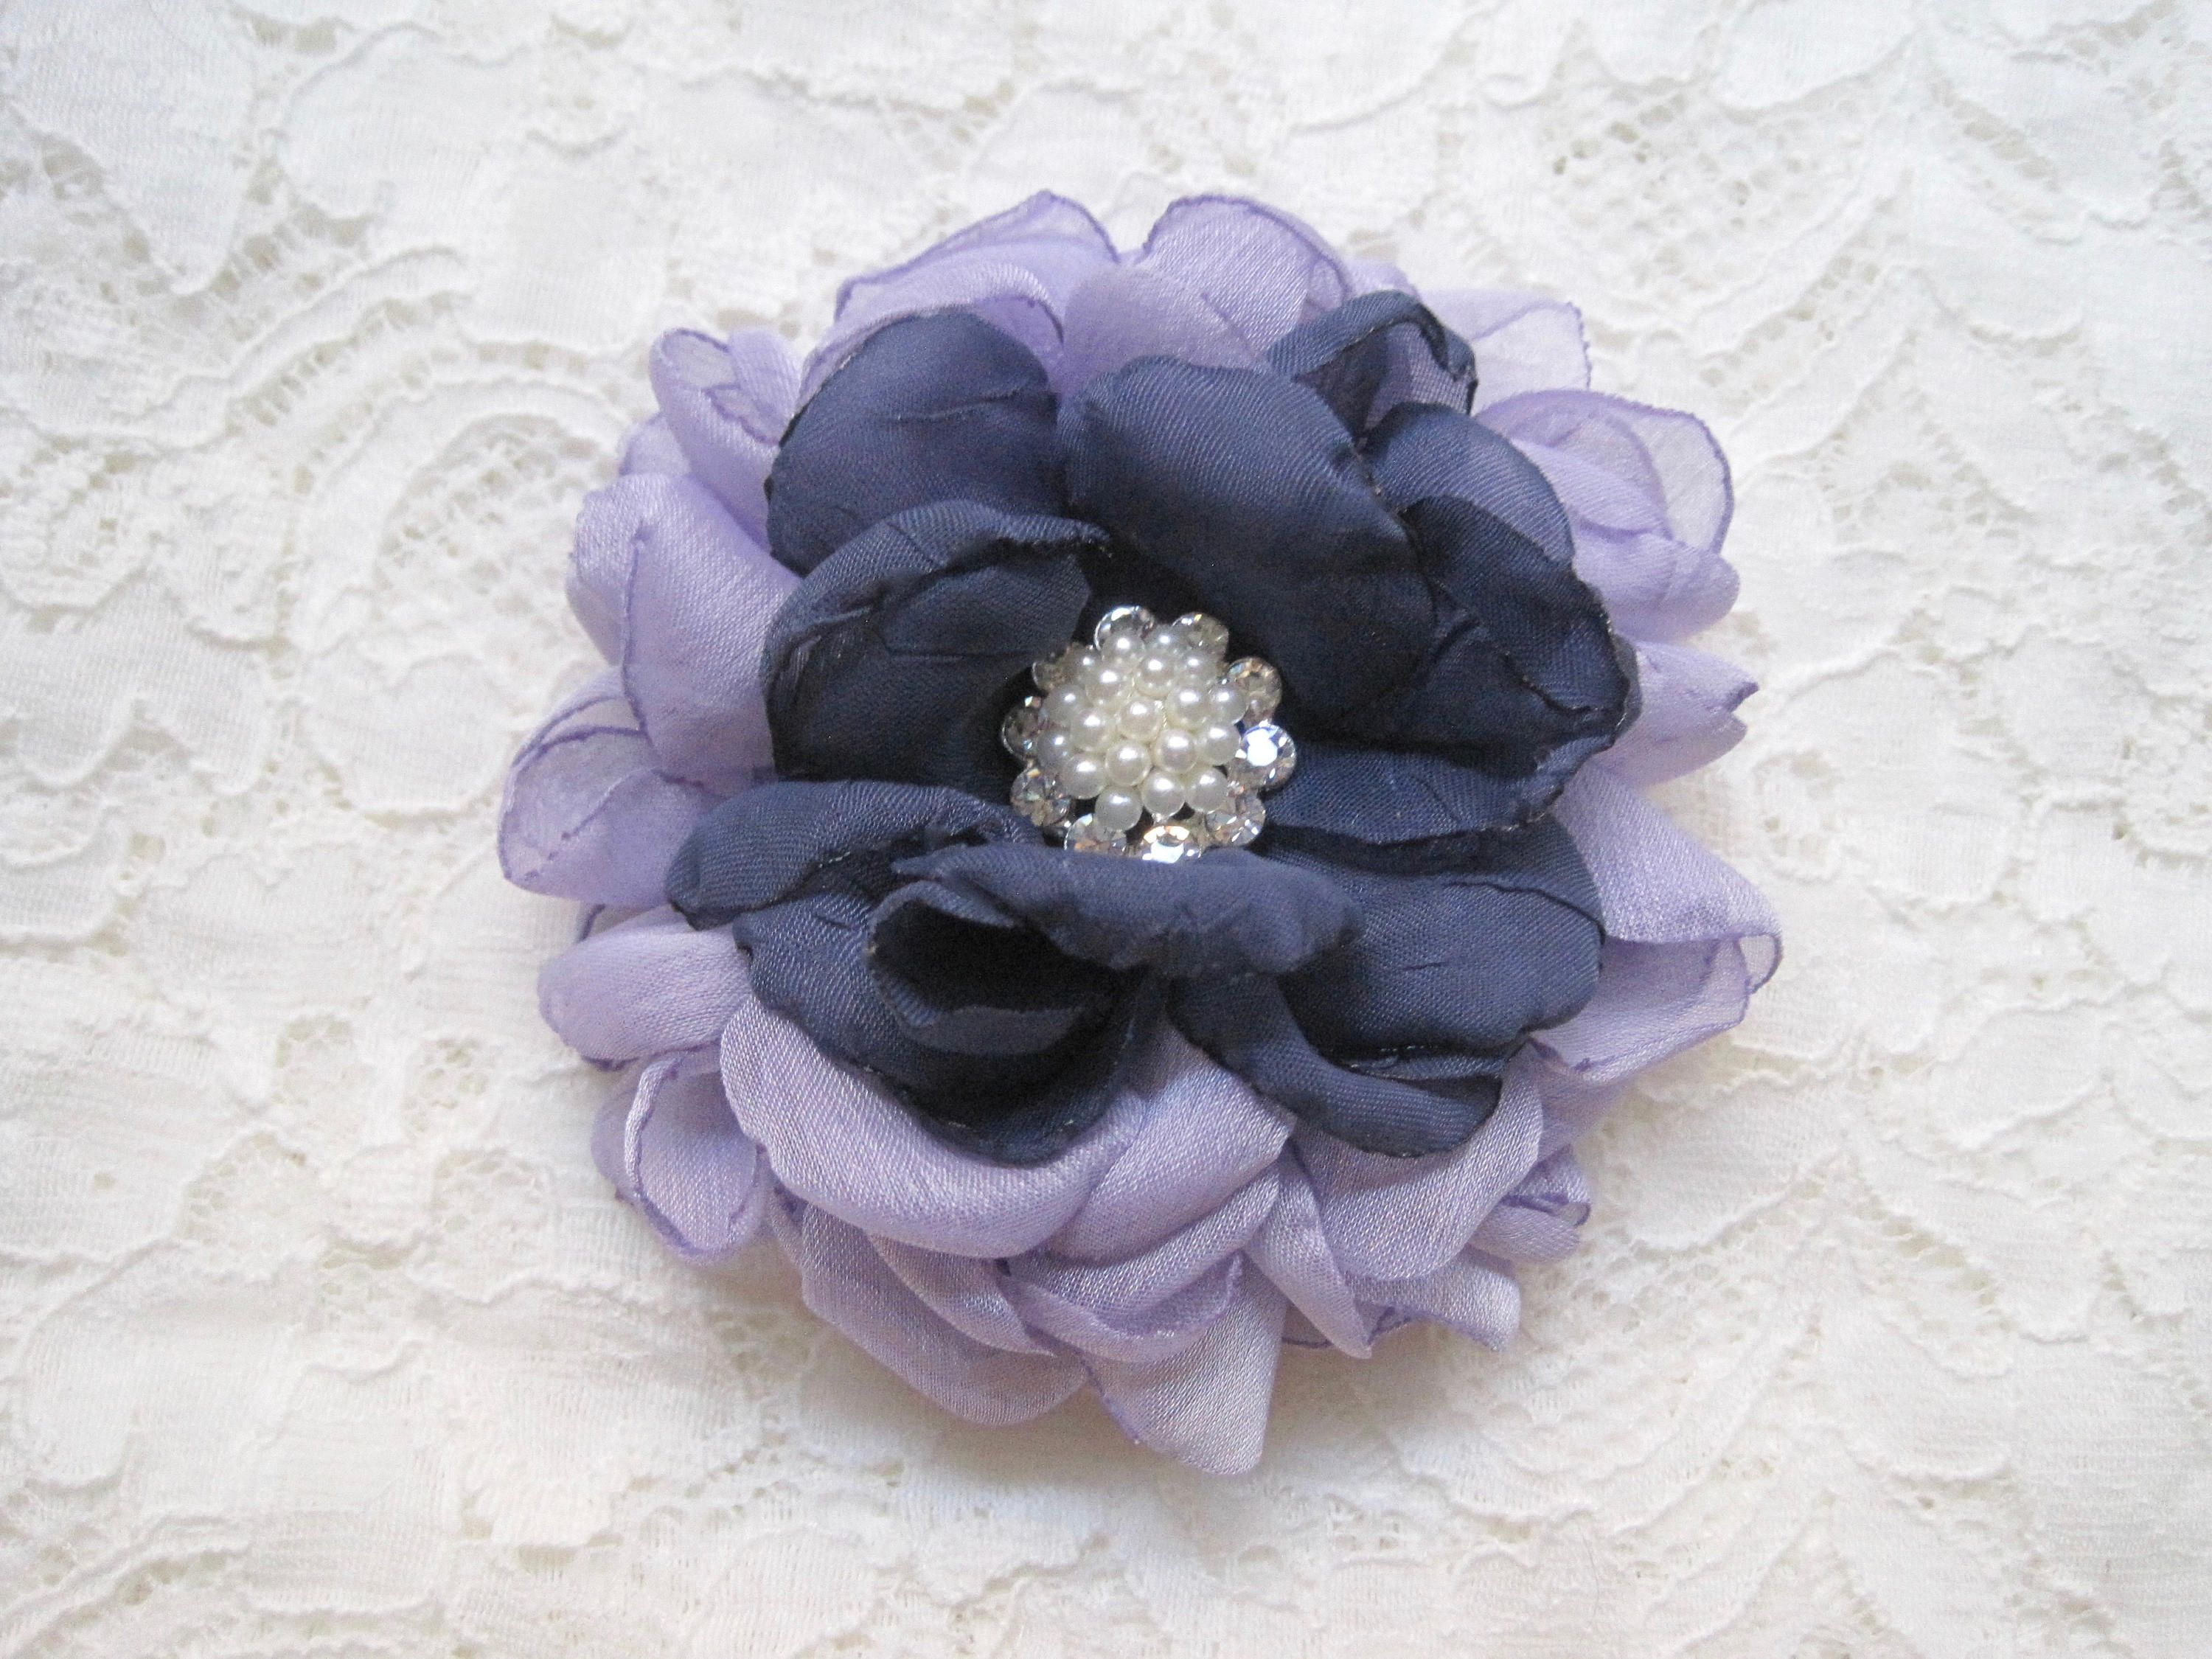 Lavender and Steel Blue Chiffon Hair Clip Bridal Bride Bridesmaid Mother of the Bride with Rhinestone Accent Hair Accessories Bridal by theraggedyrose on Etsy